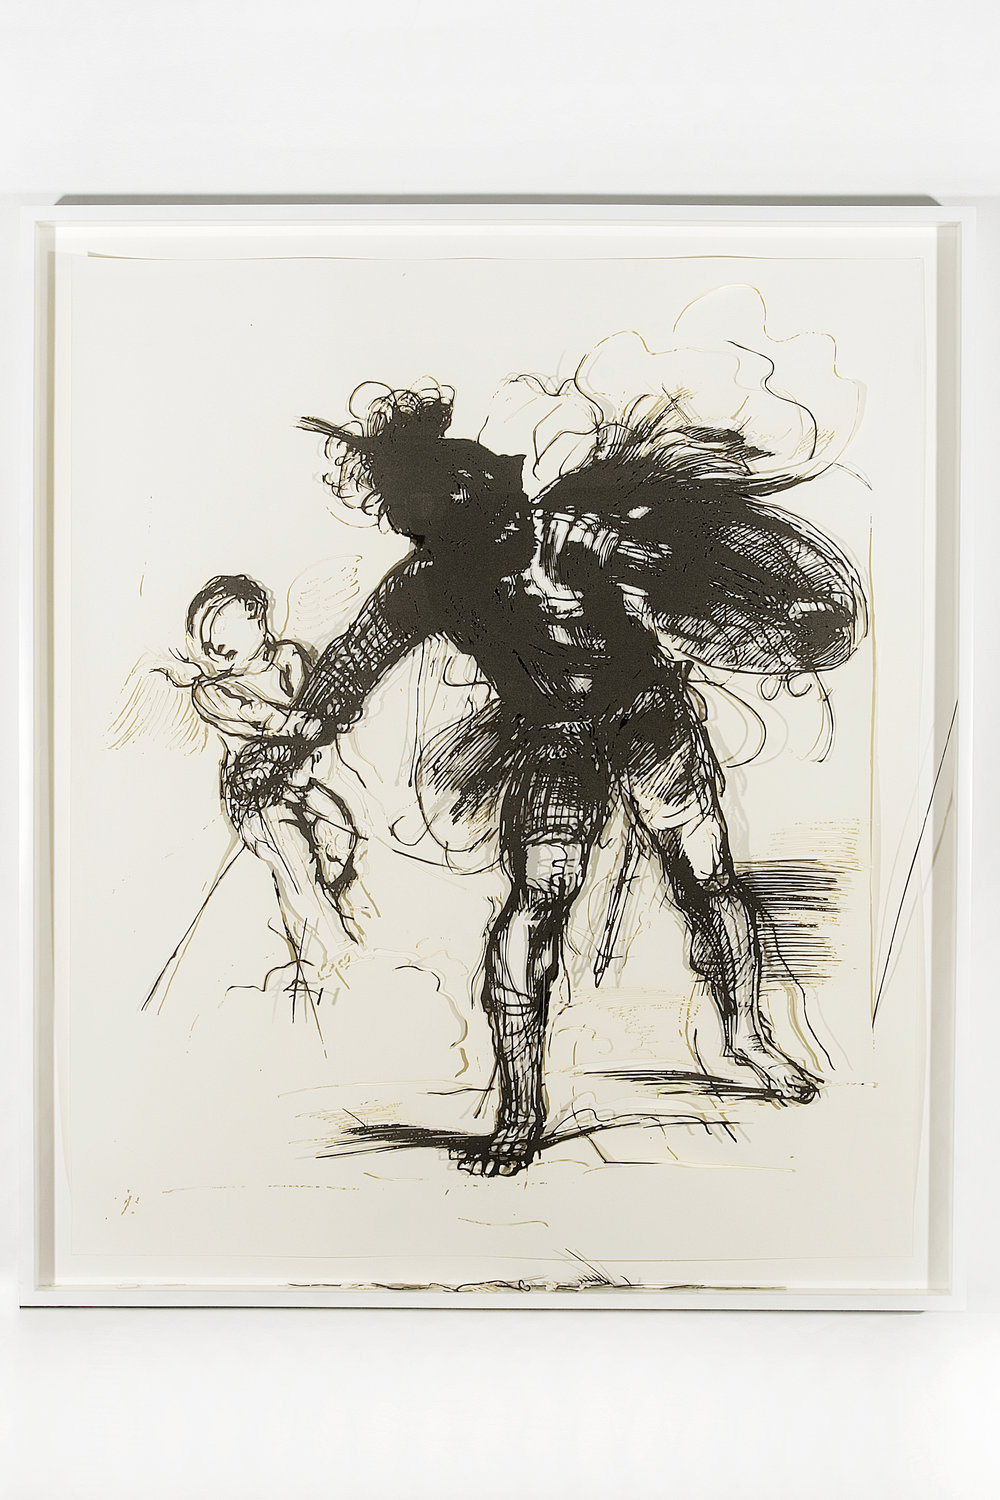 """Collapsed Drawing: """"Cupid Restraining Mars"""" (Guercino), 2007 laser-cut paper and laser-cut archival digital print mounted on museum board 115,5 x 100 cm - 45 1/2 x 39 3/8 inches (framed)"""